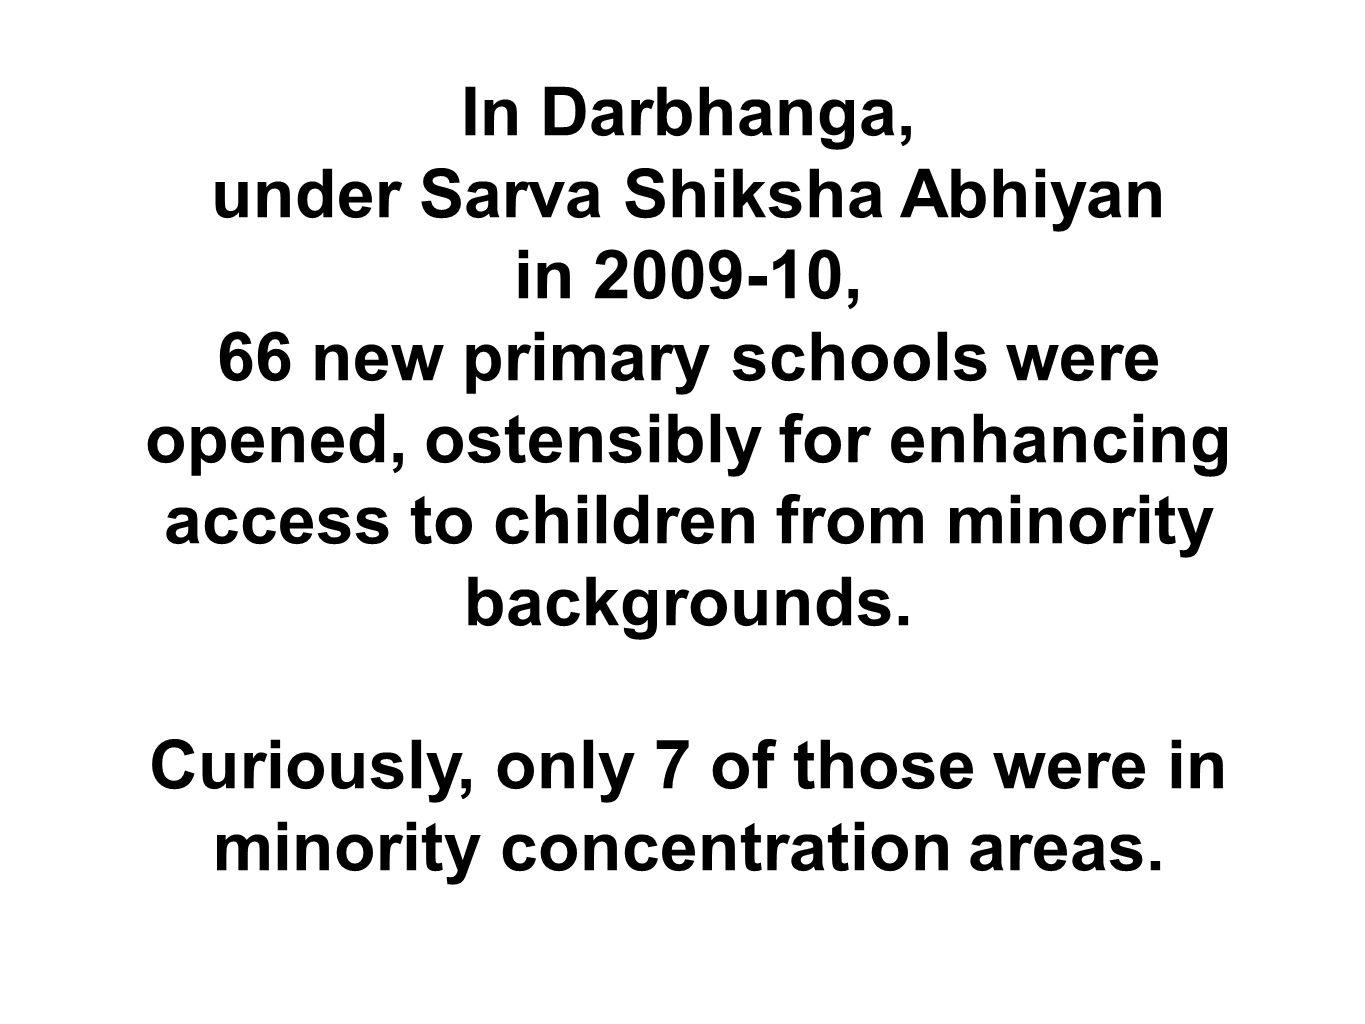 In Darbhanga, under Sarva Shiksha Abhiyan in 2009-10, 66 new primary schools were opened, ostensibly for enhancing access to children from minority ba